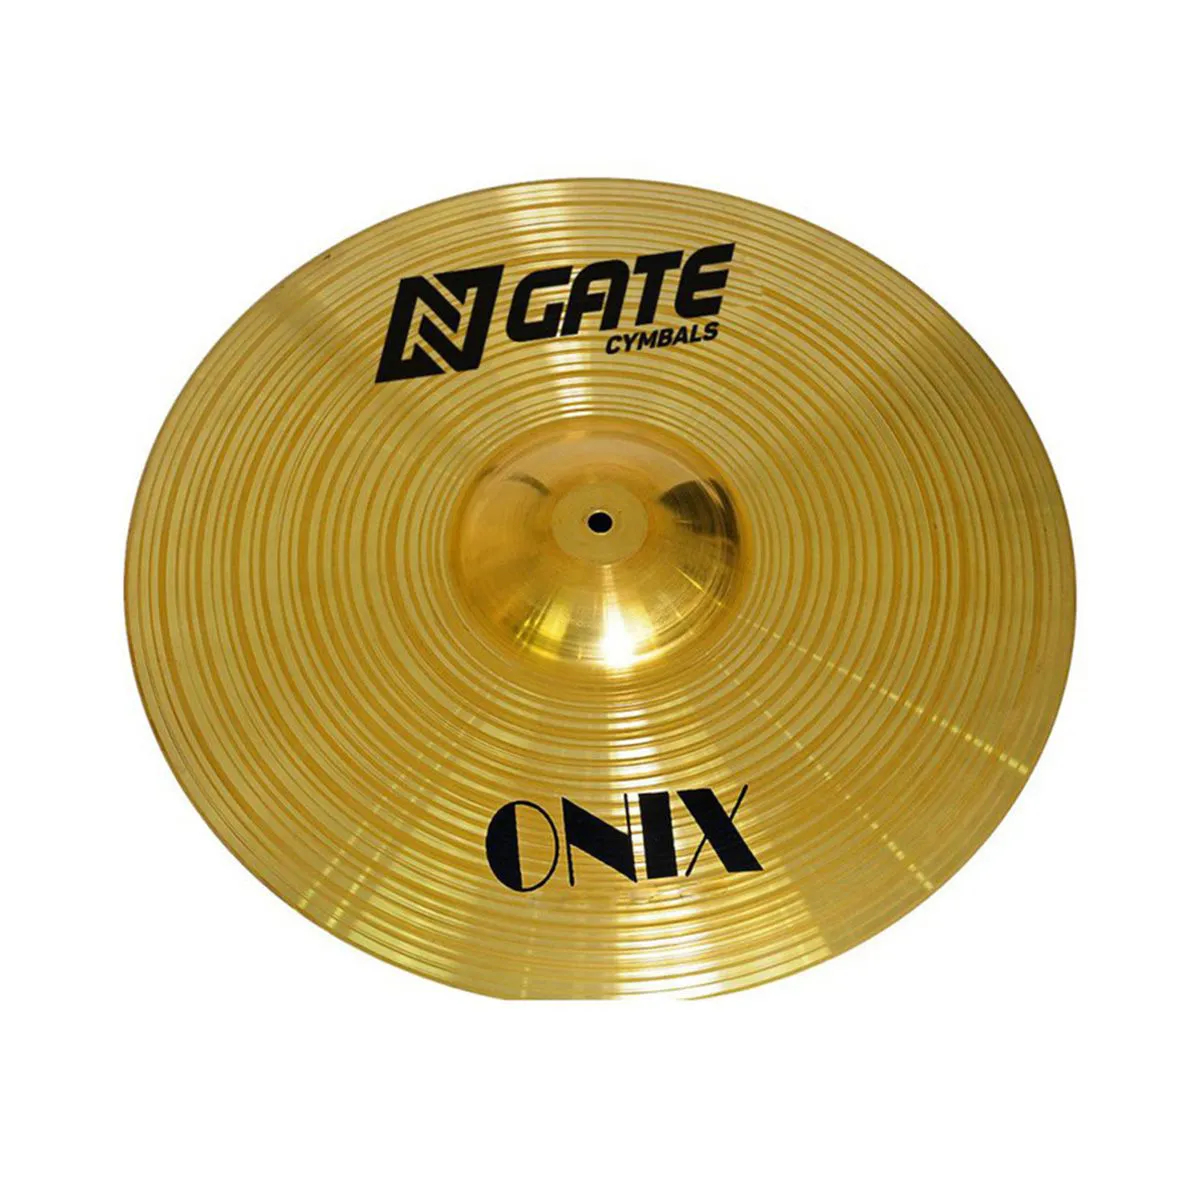 Prato de Ataque N.gate LT16MC Onix Series 16 Medium Crash